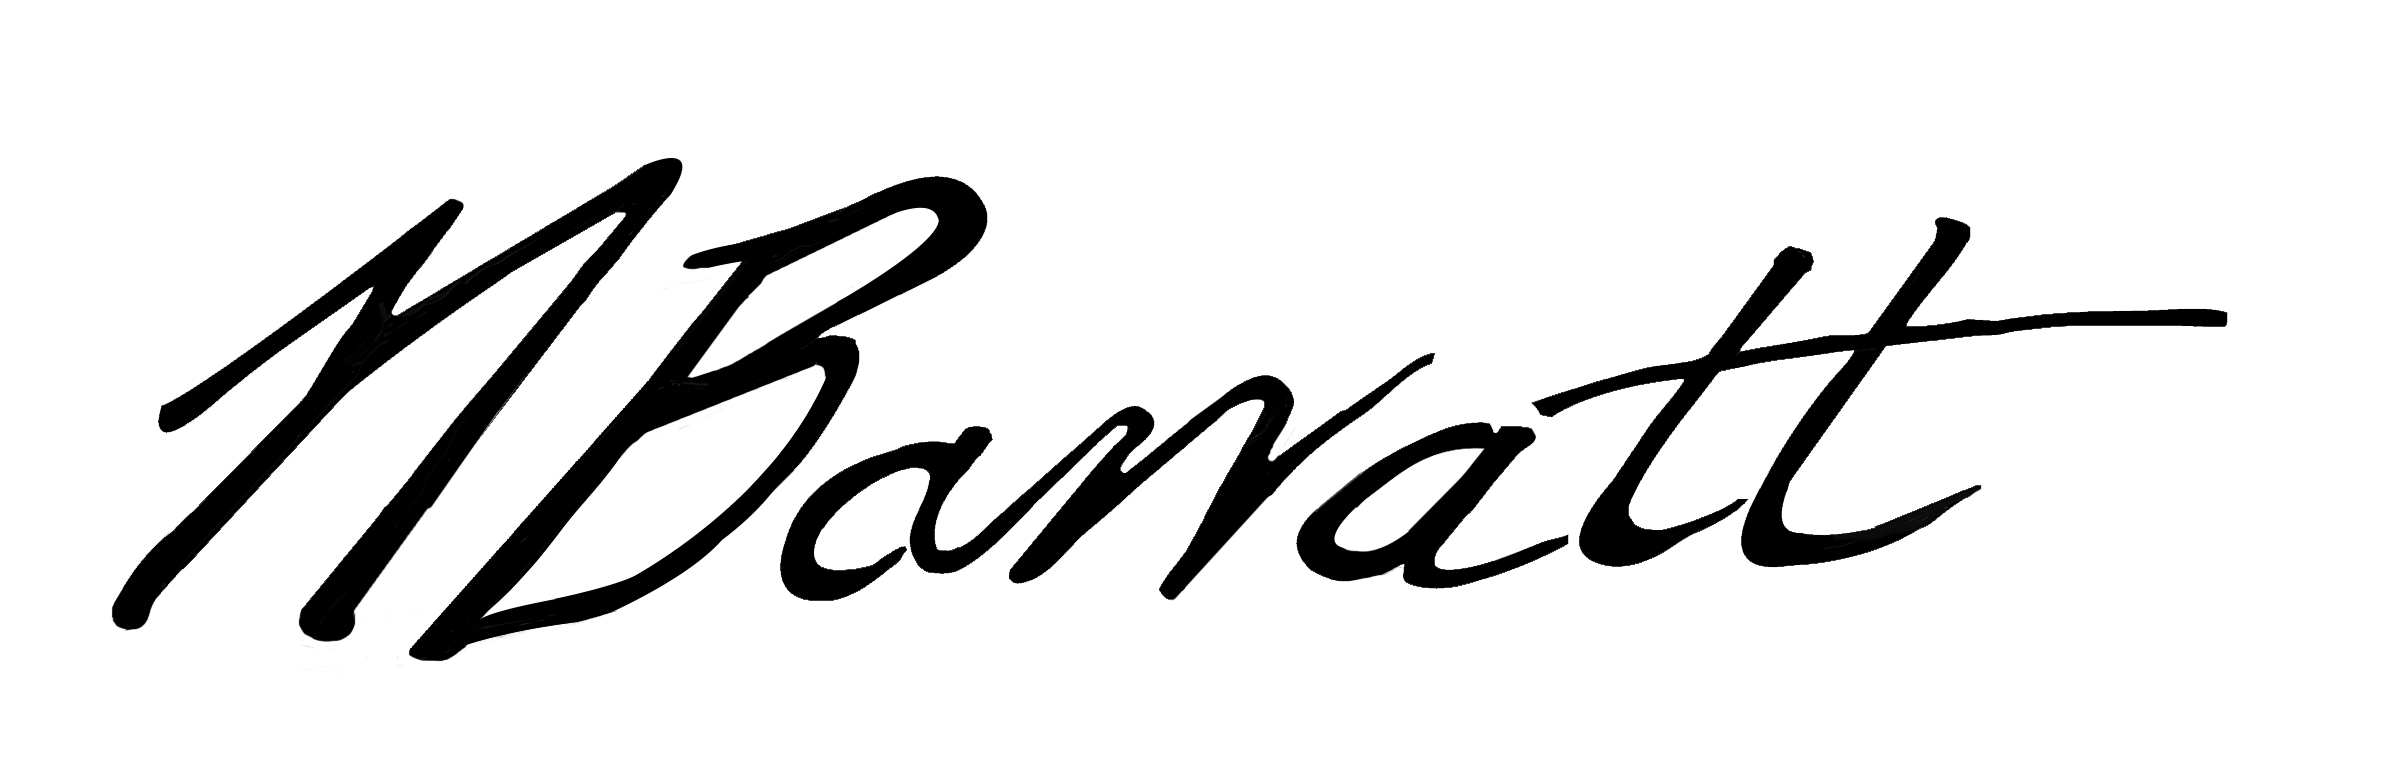 Nina Barratt's Signature